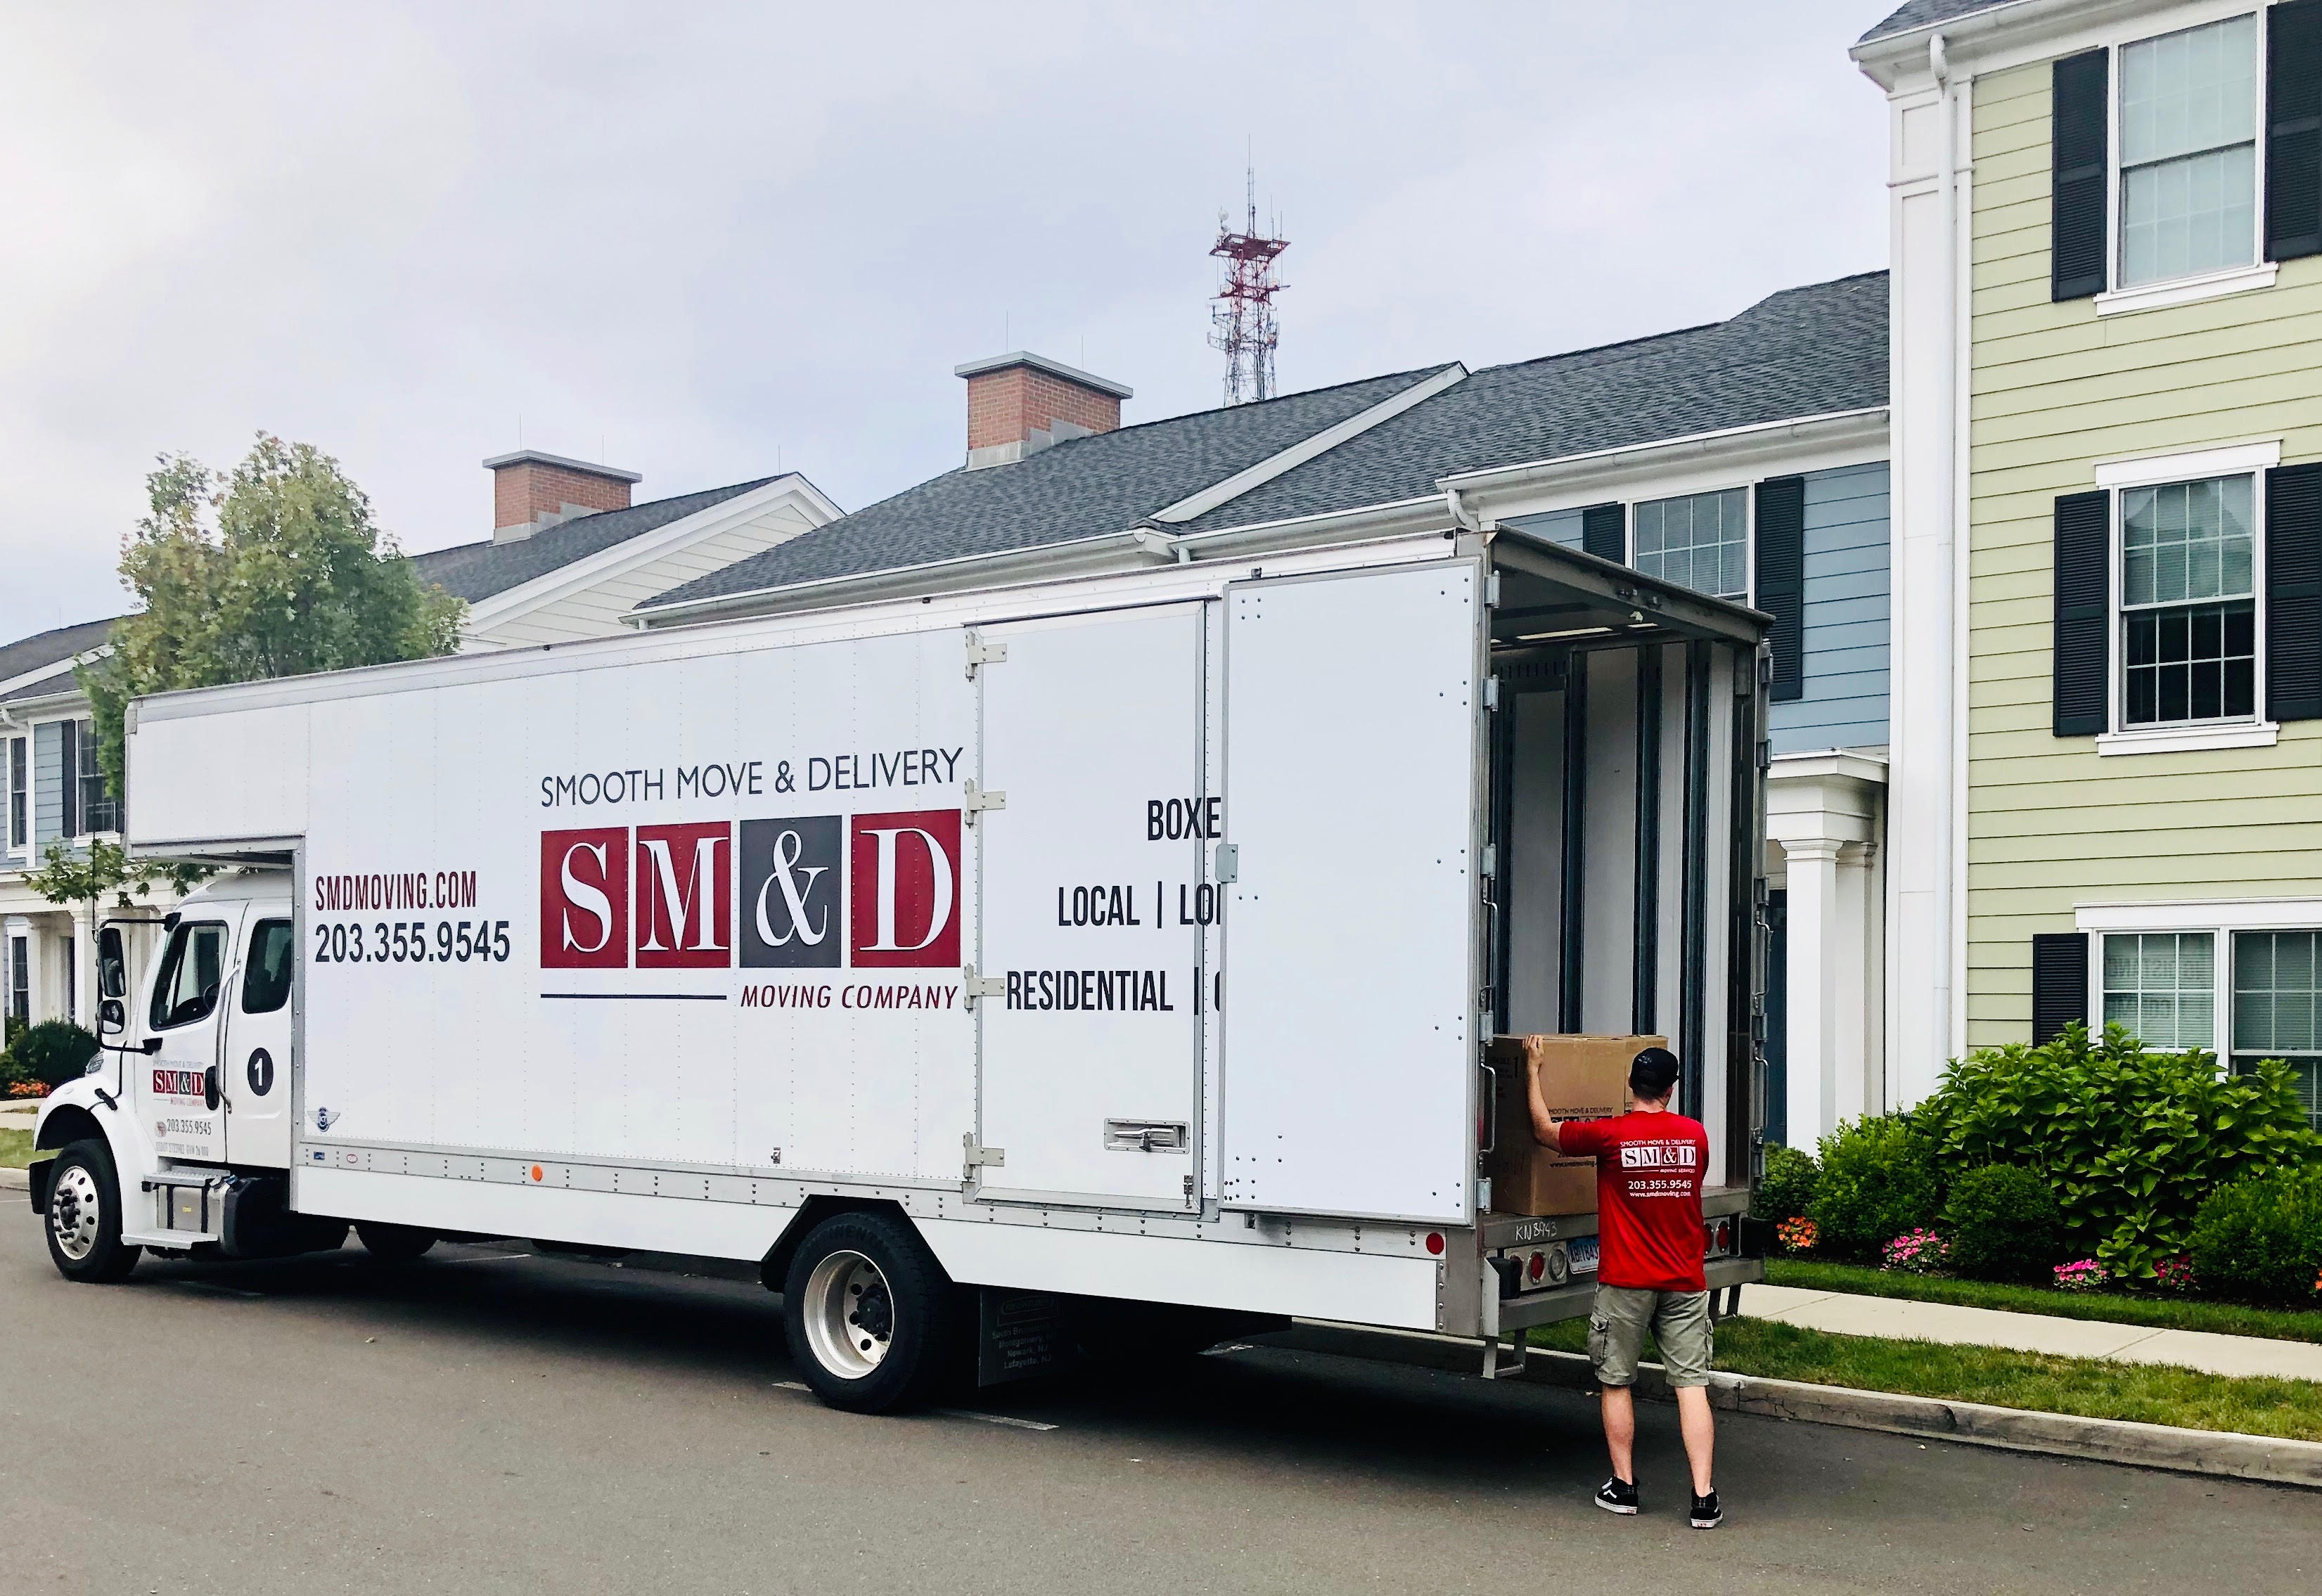 Connecticut's Top Rated Local® Moving Service Companies Award Winner: Smooth Move & Delivery